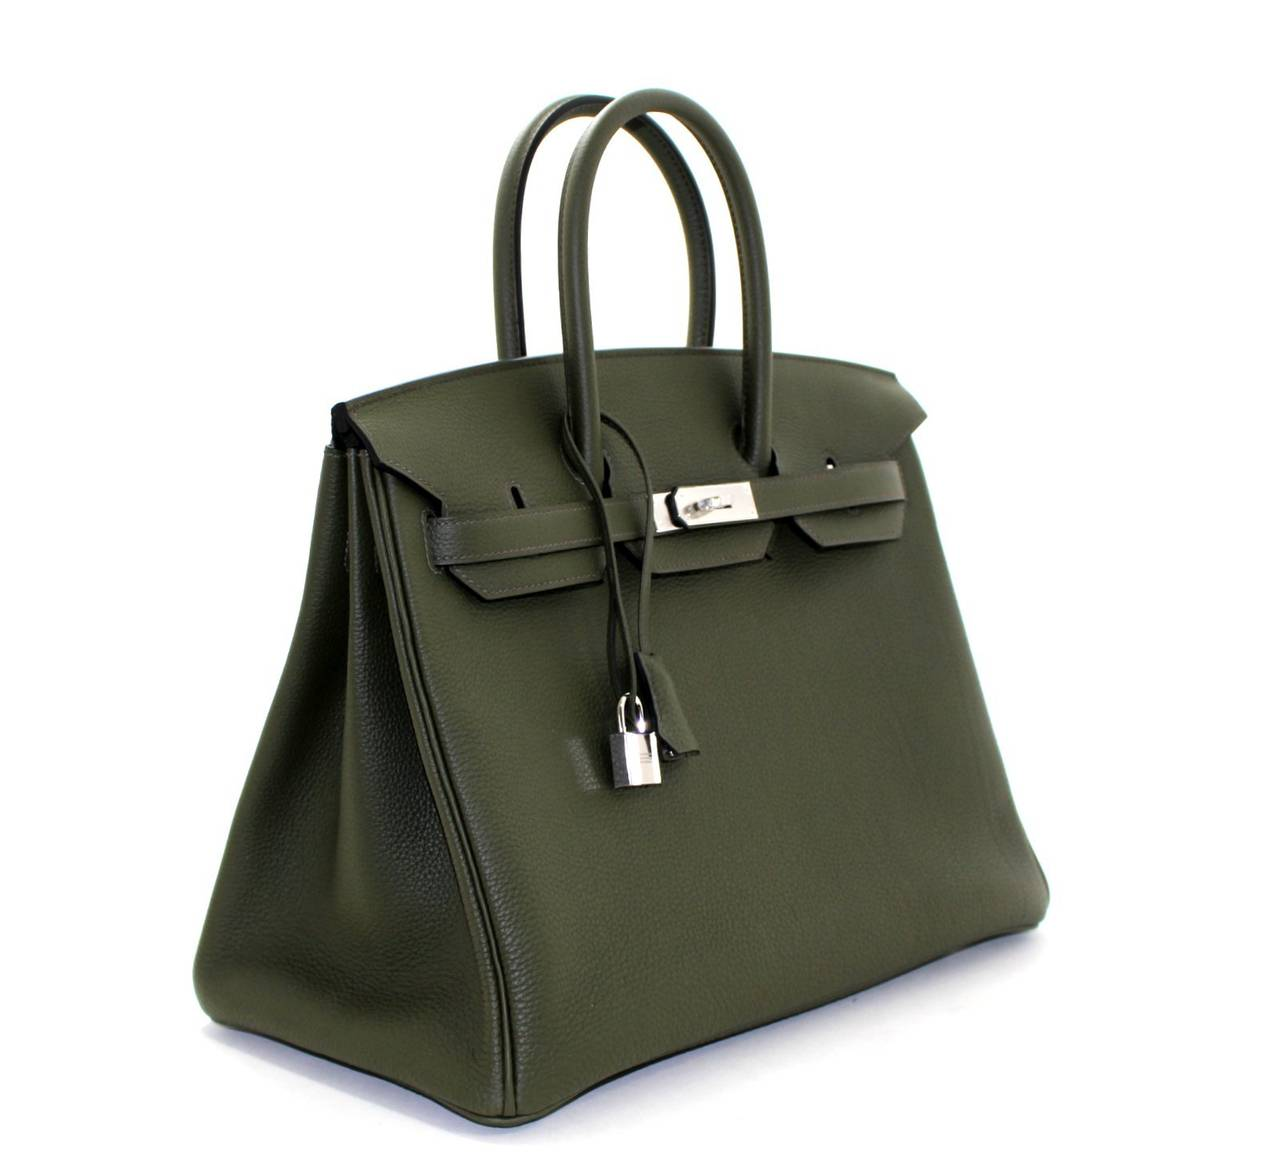 Hermes Birkin Bag in Vert Olive green Togo Leather, 35 cm size 3